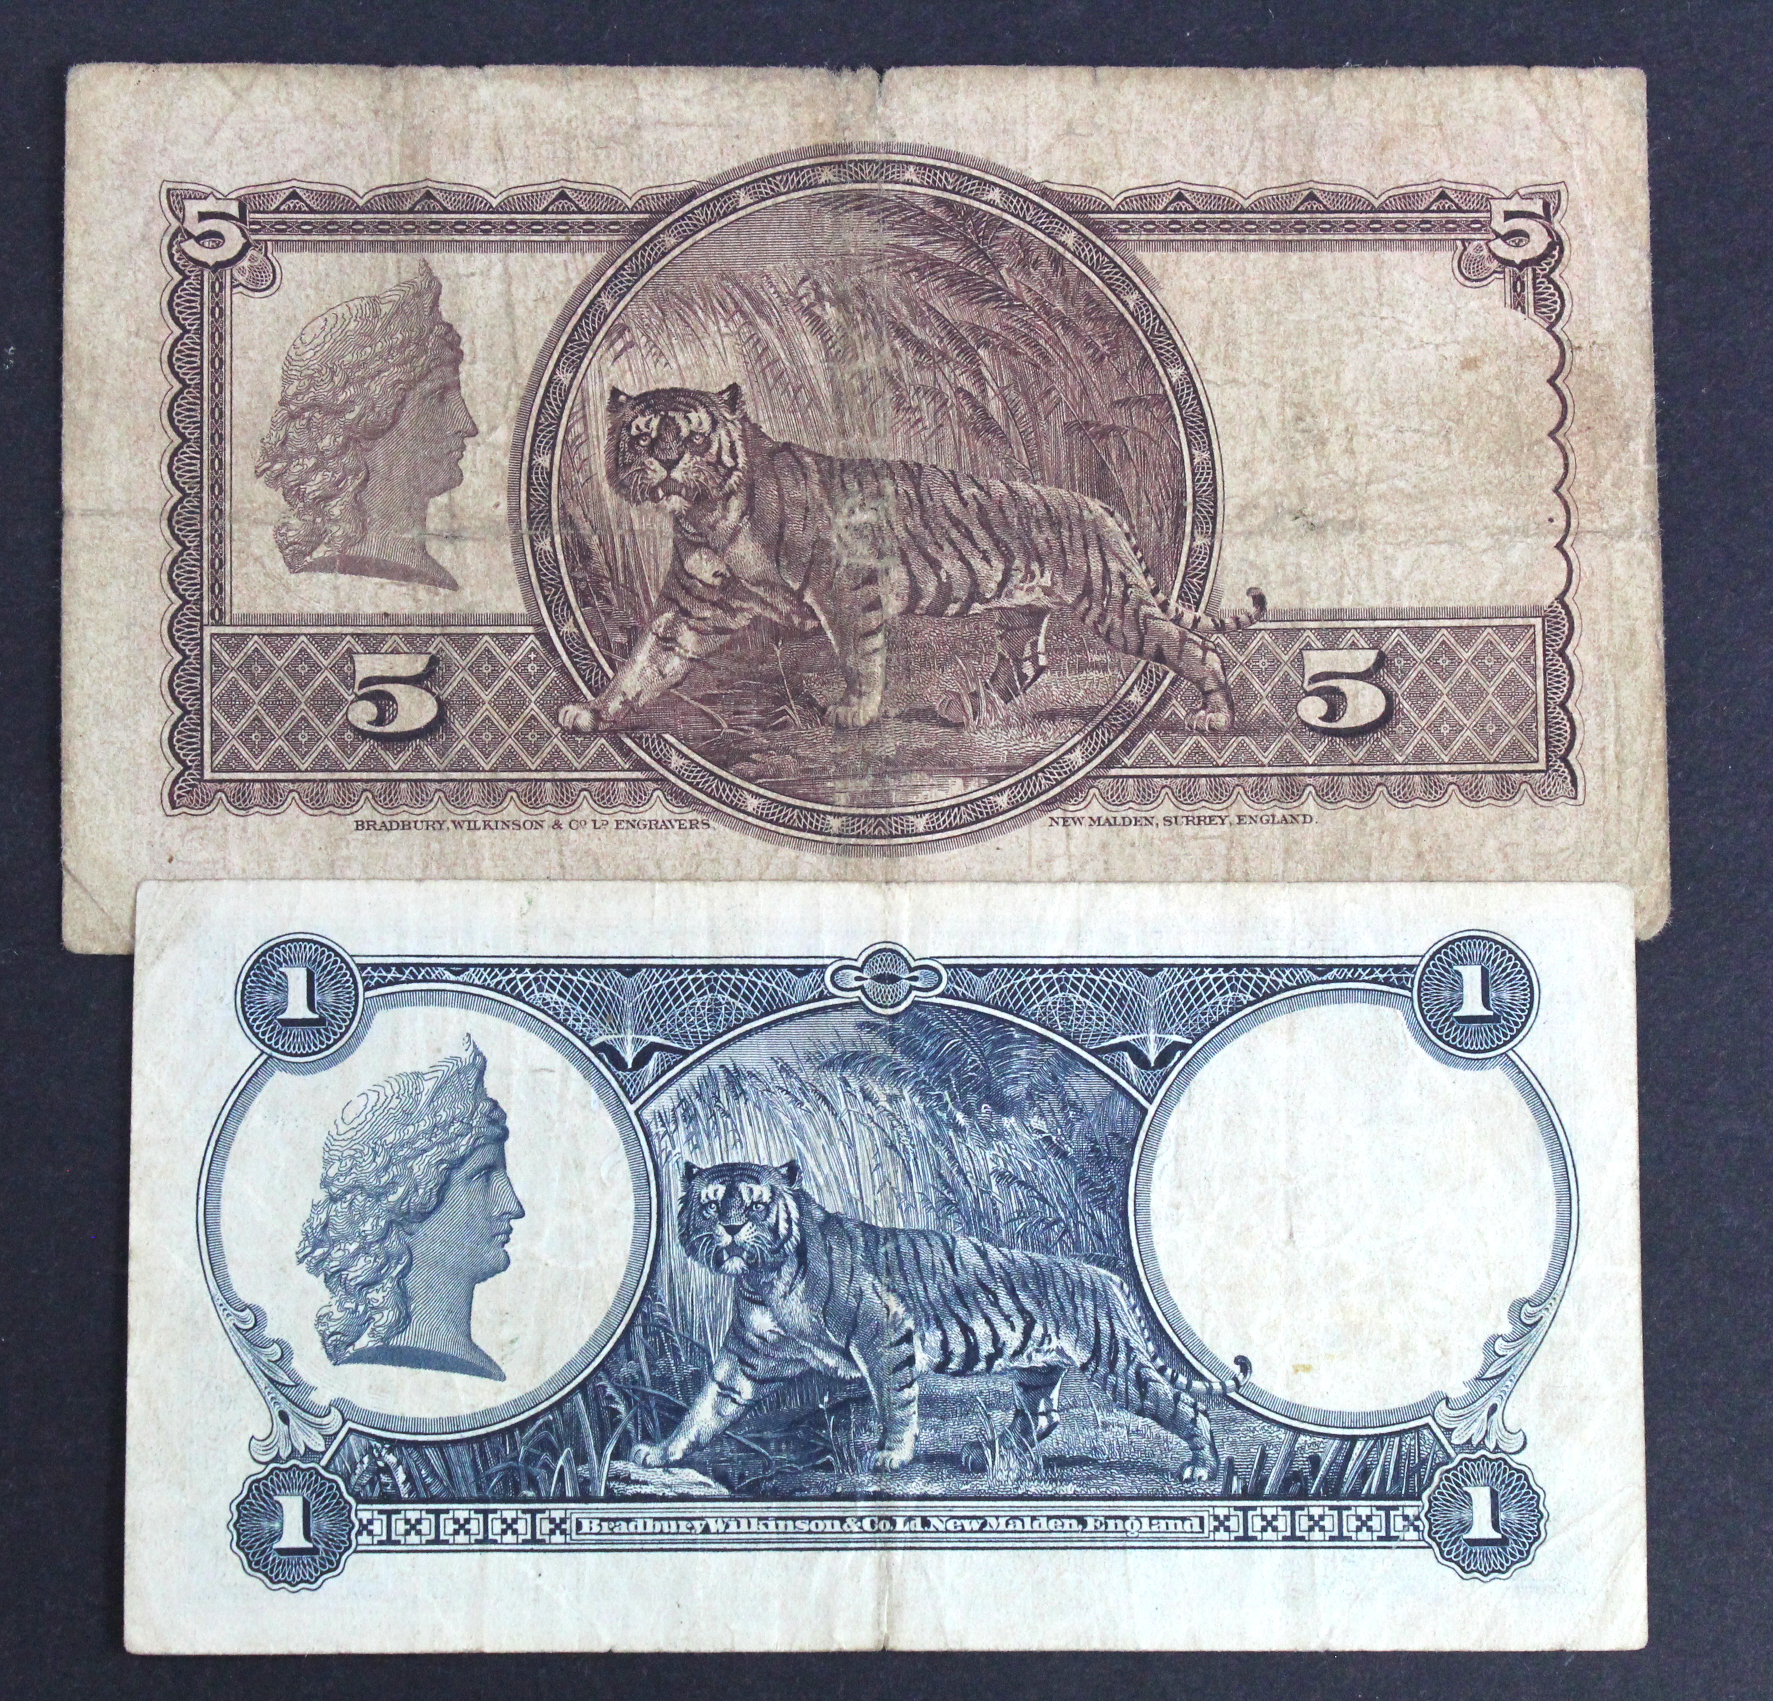 Straits Settlements (2), 5 Dollars and 1 Dollar dated 1st January 1935, portrait King George V at - Image 2 of 2